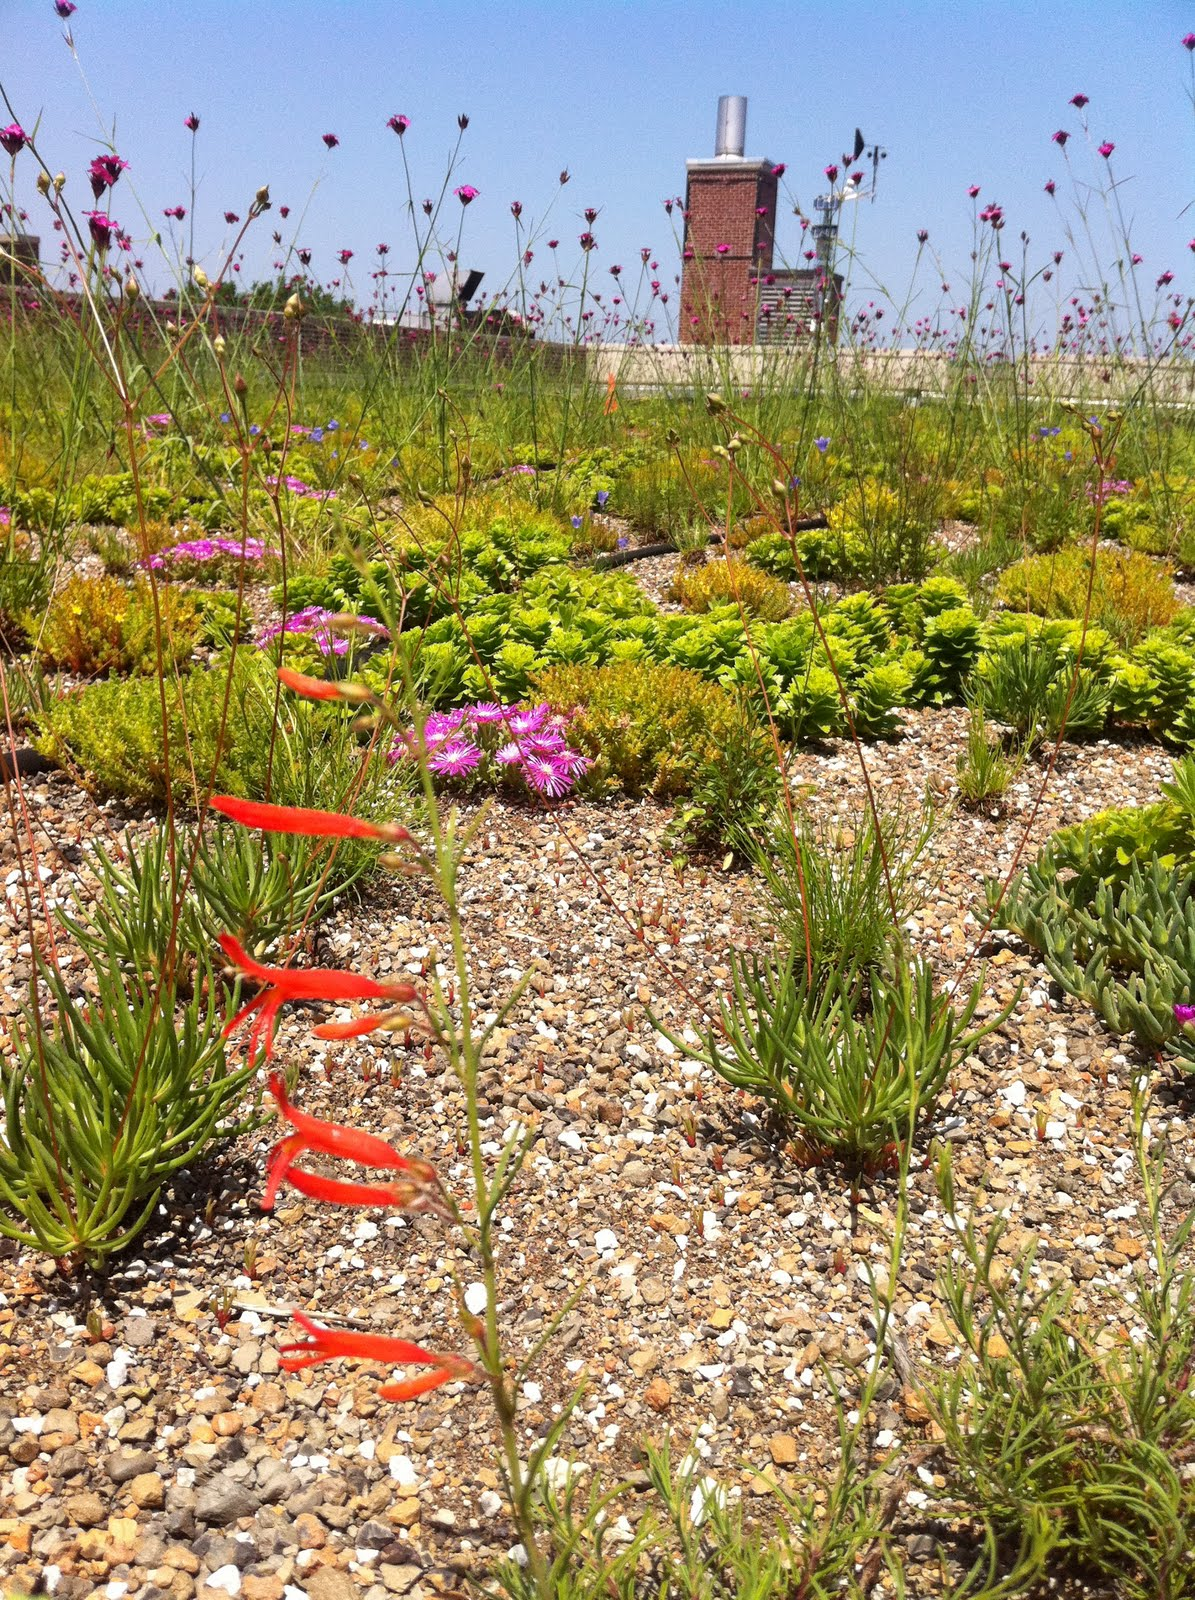 recover-green-roofs-public-school-roof-NYC-2010-12.jpg